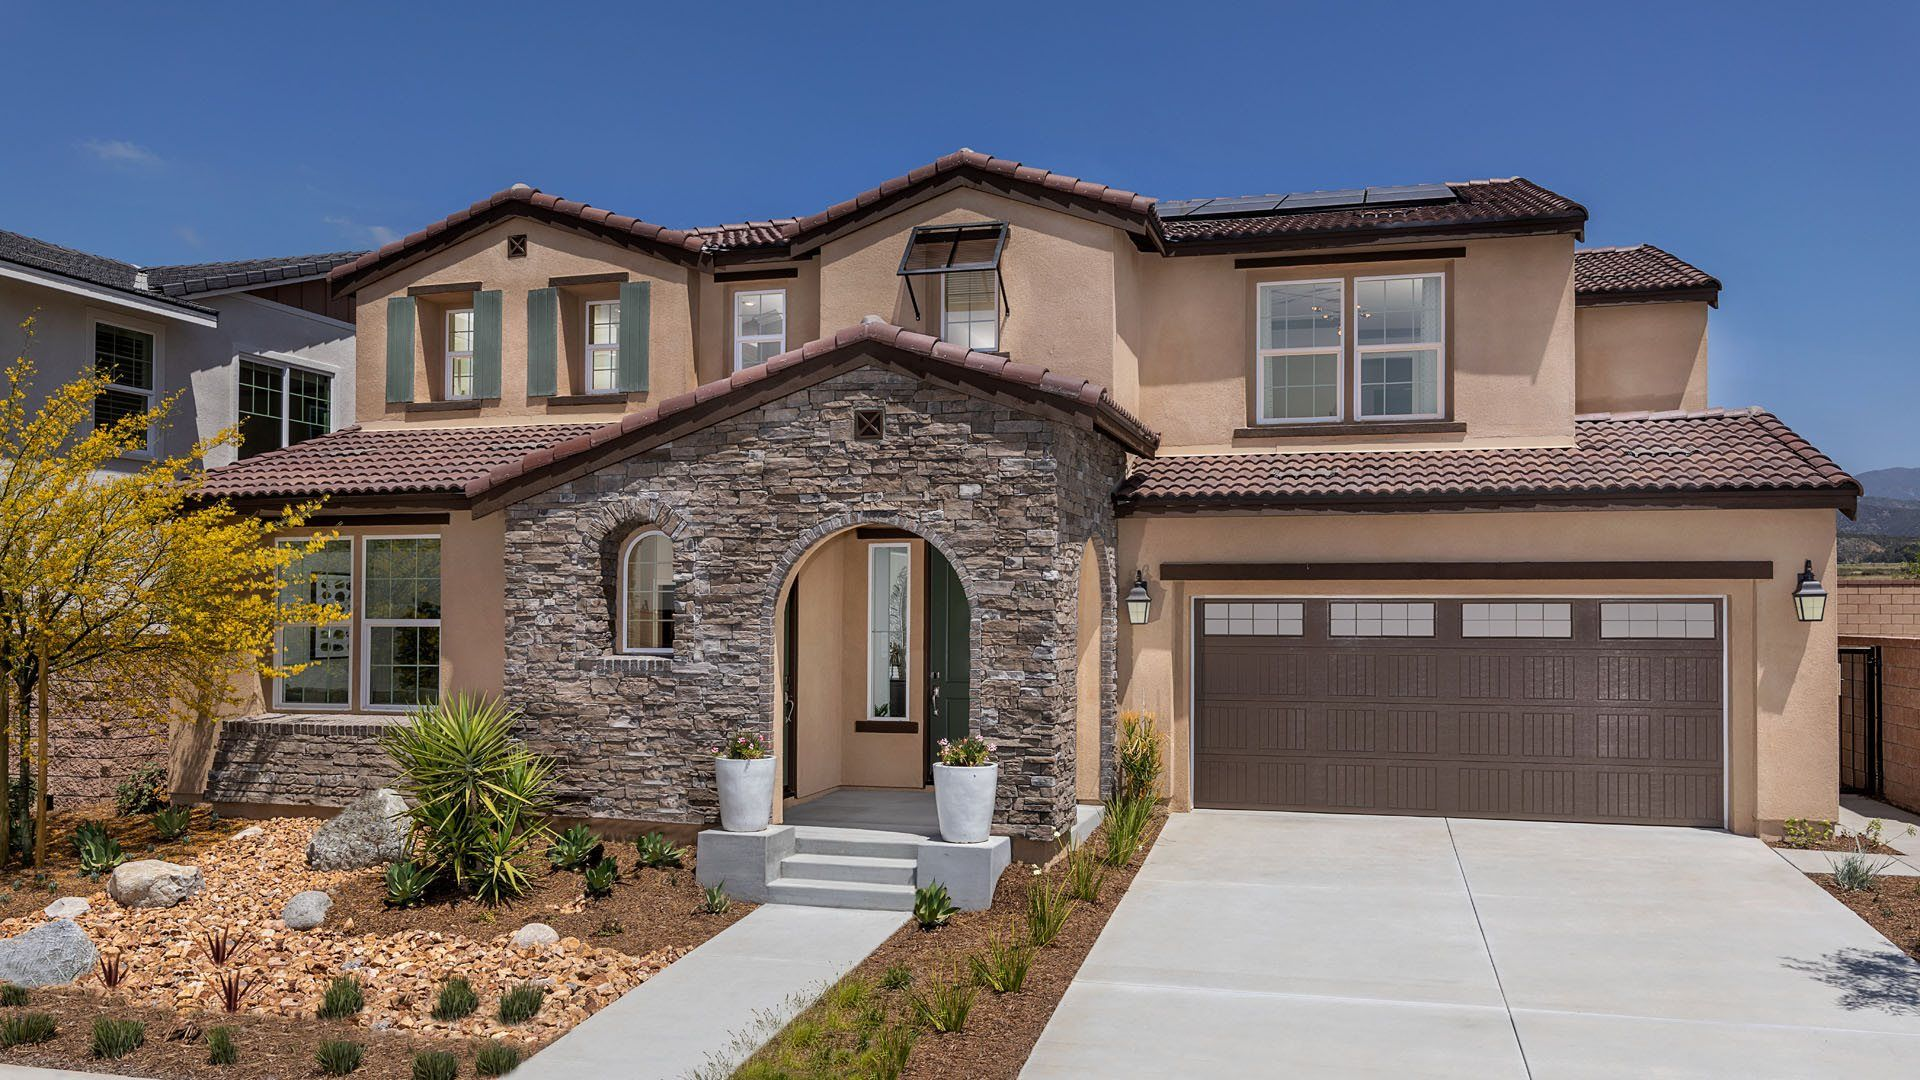 Orchid at The Arboretum - 3156 Next Gen by Lennar